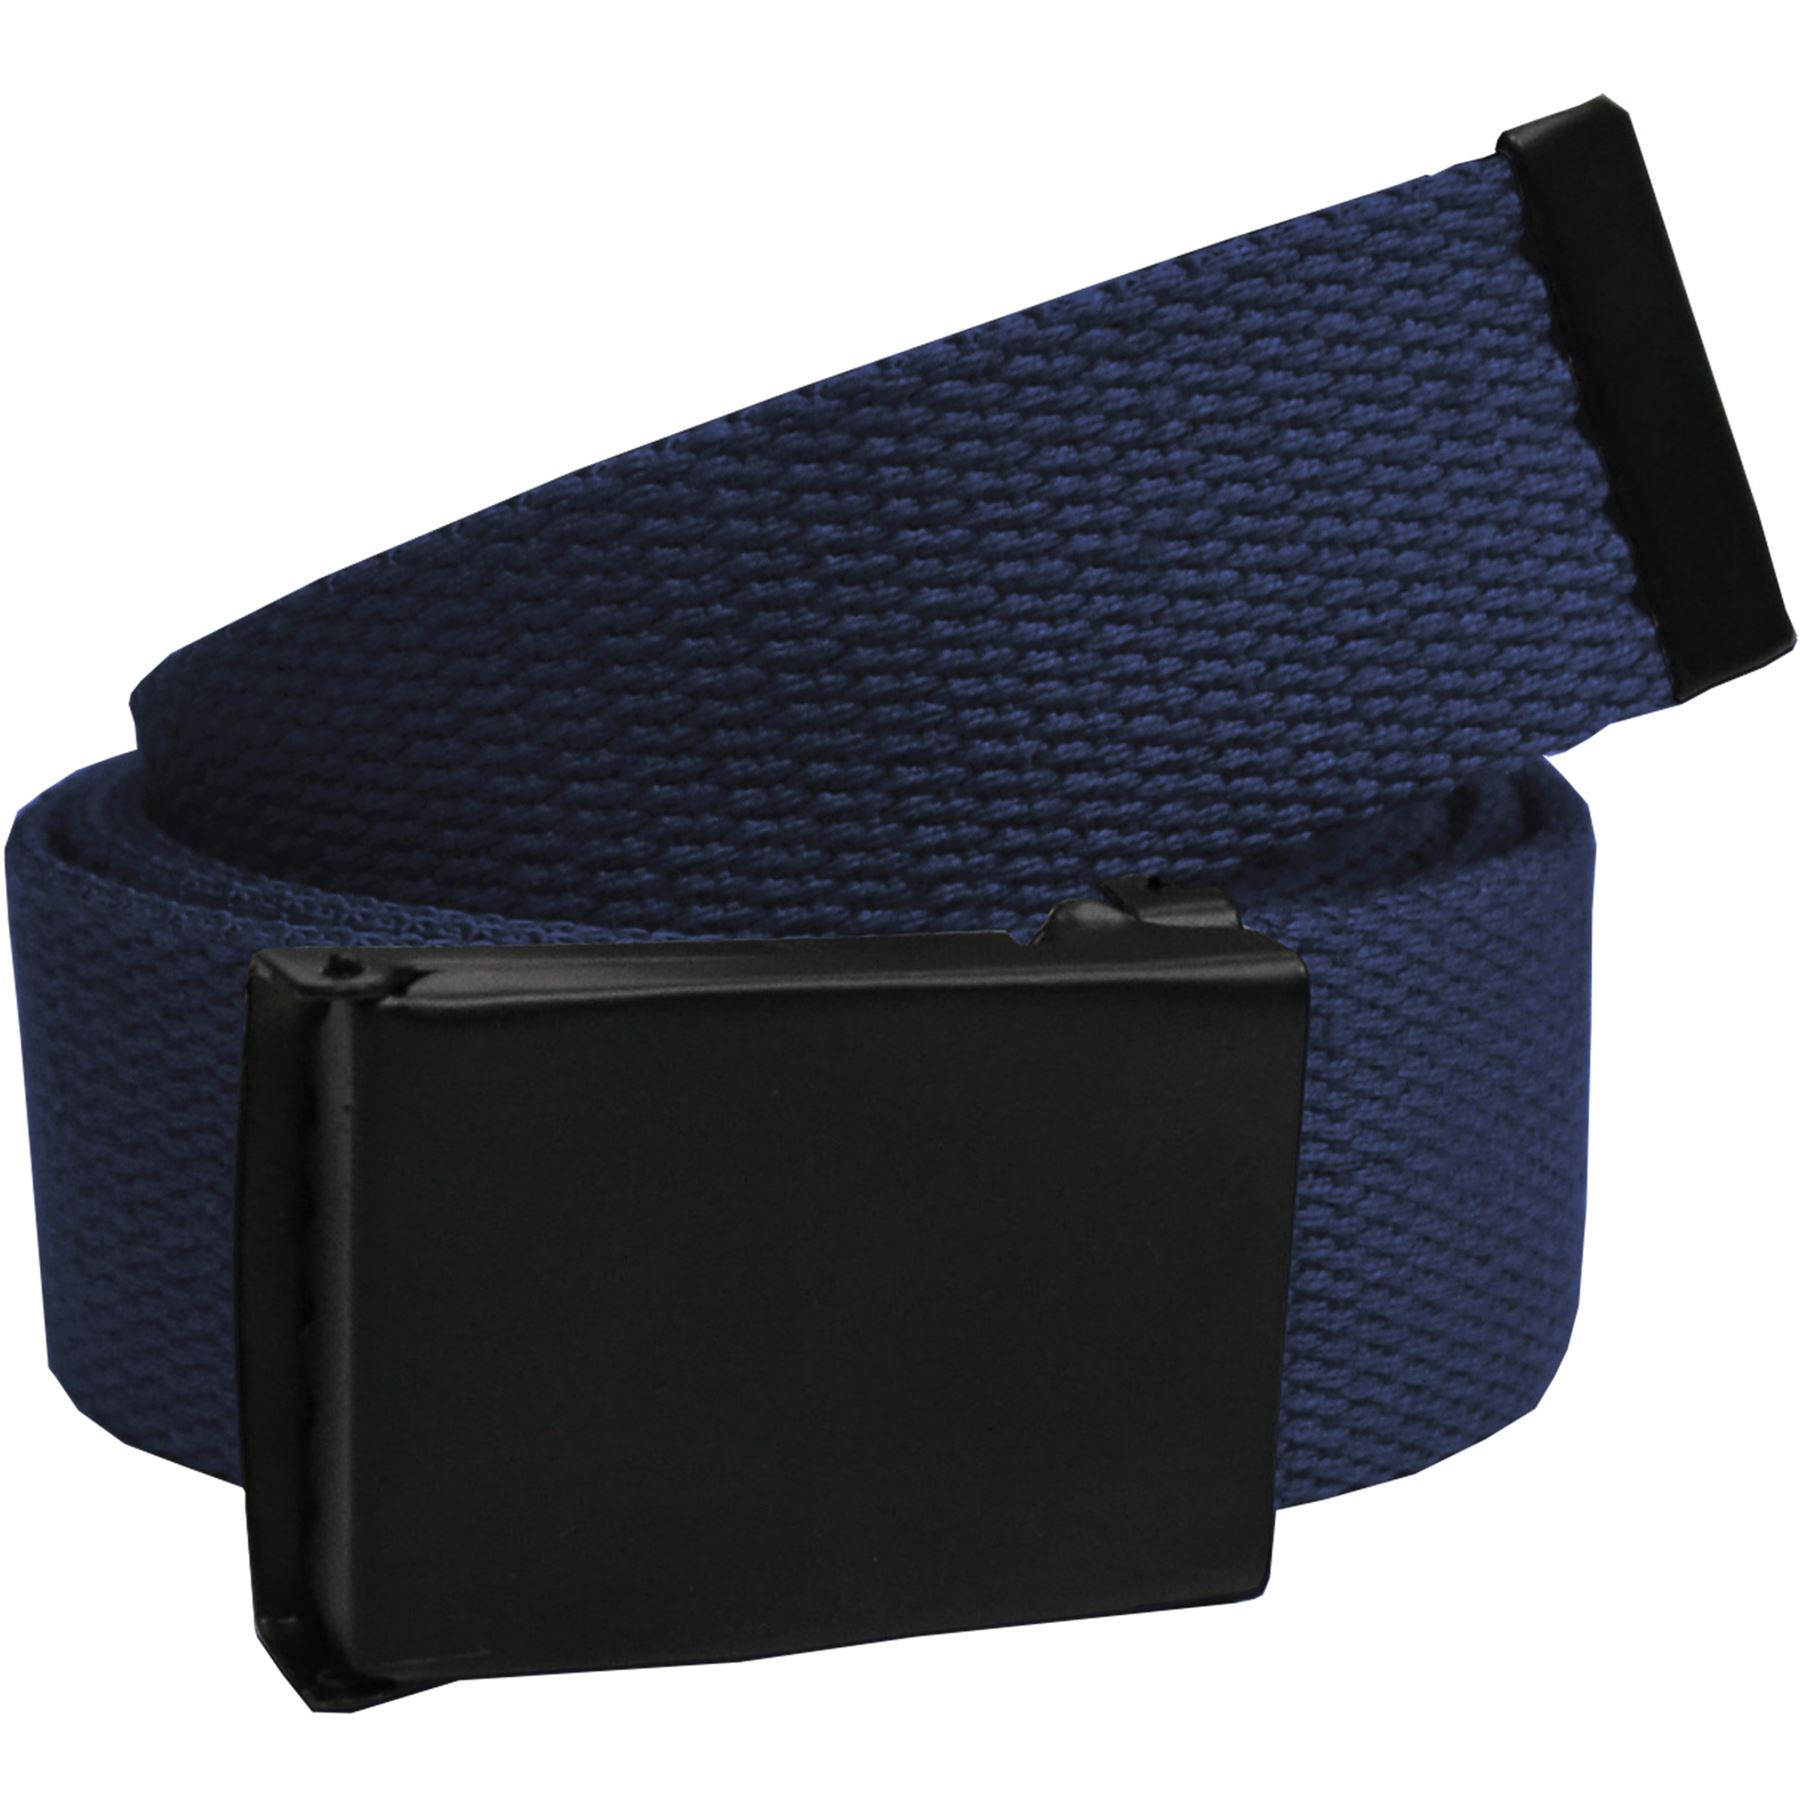 Kruze-Mens-Canvas-Belt-For-Jeans-Designer-Adjustable-Regular-Big-King-Size-Belts Indexbild 7